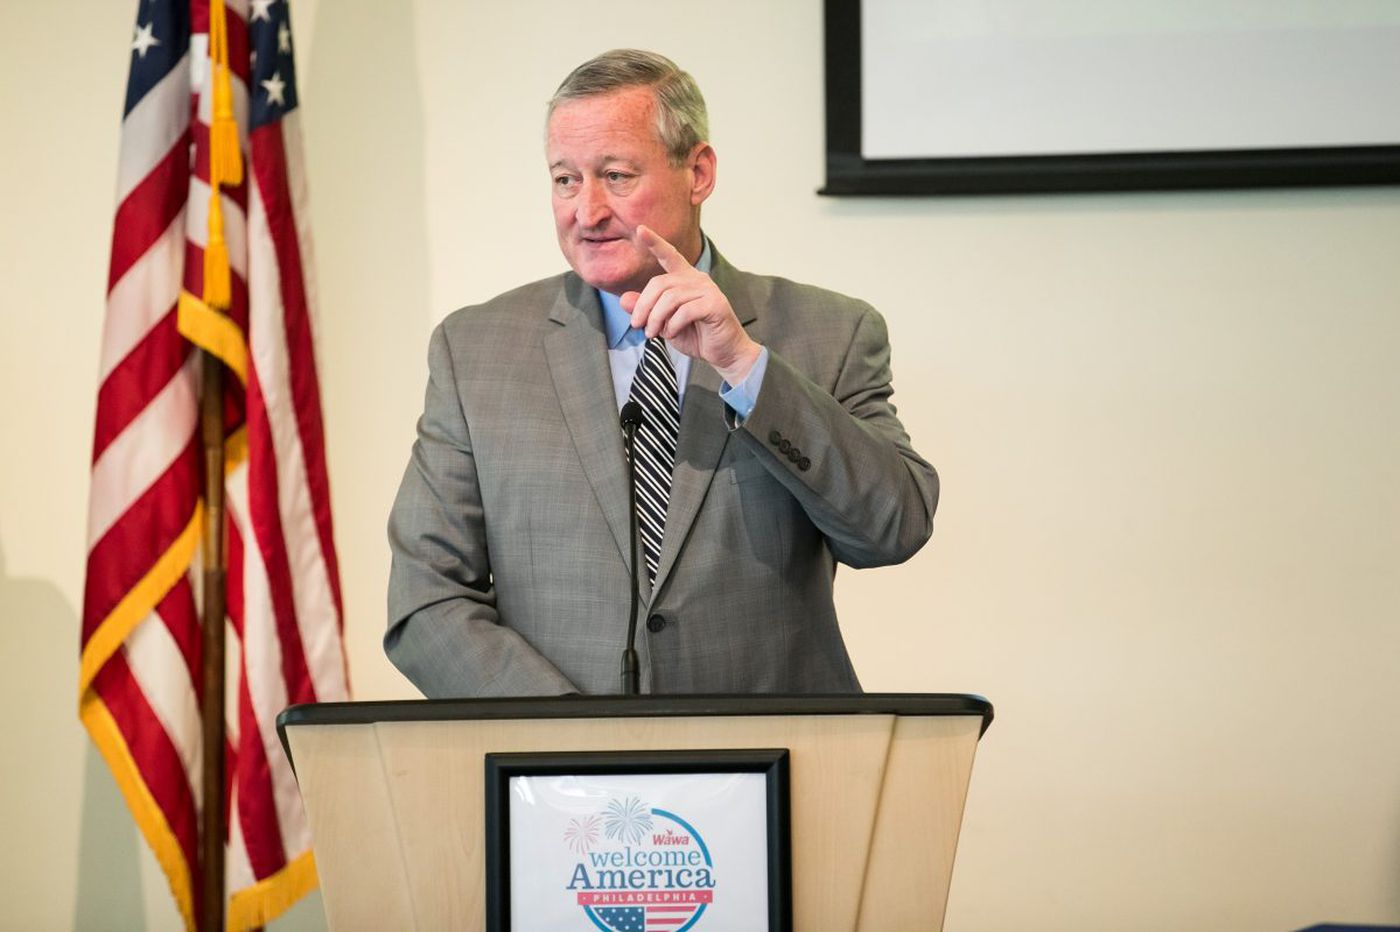 Kenney may be losing touch with his South Philly base | Dom Giordano